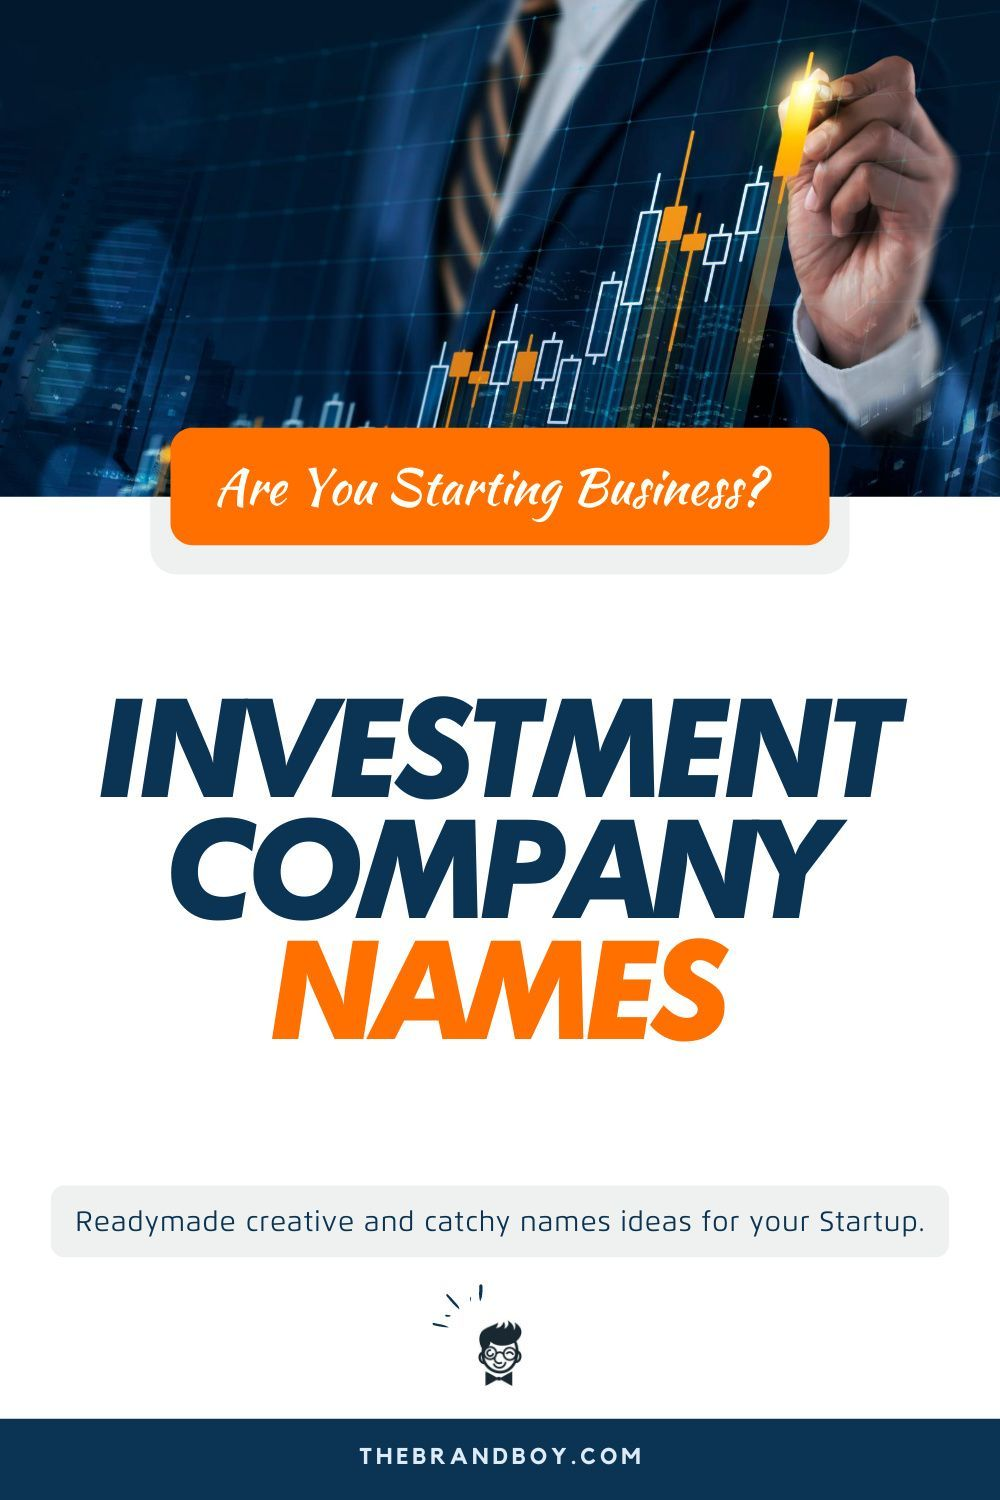 570 Catchy Investment Company Names Thebrandboy Com Investment Companies Investing Company Names